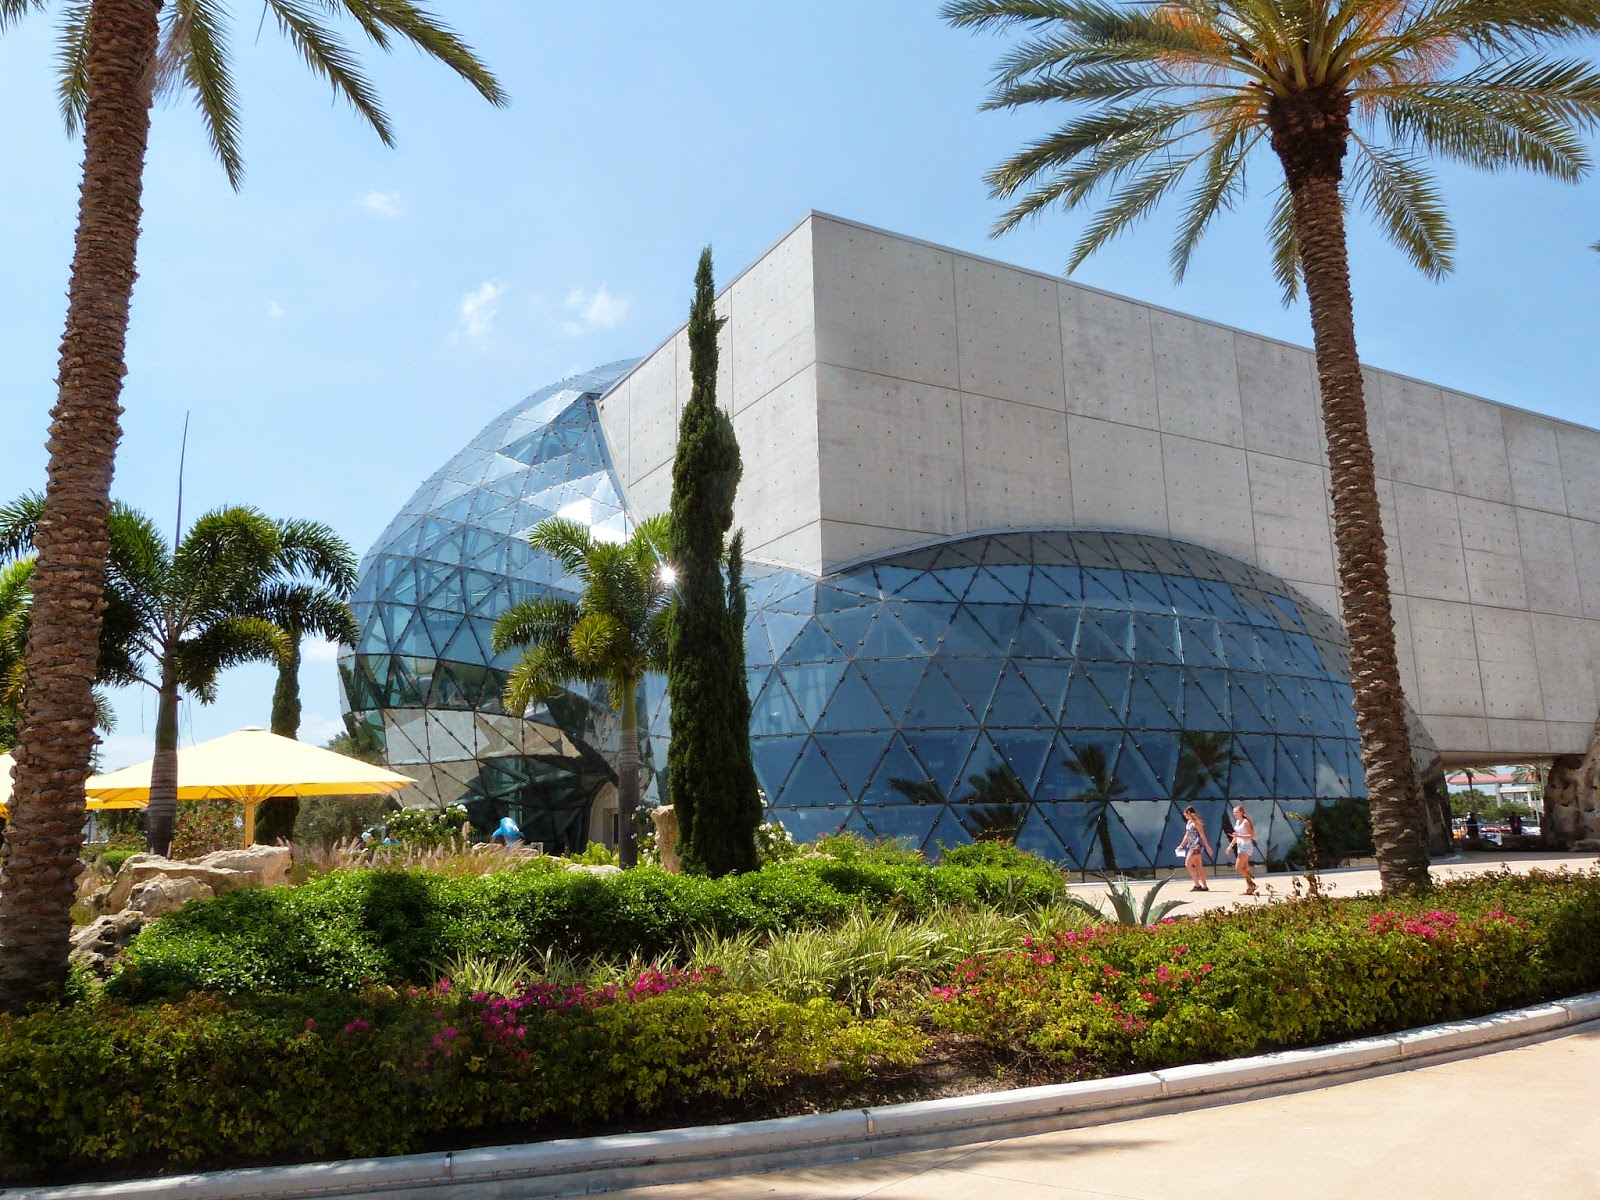 Dali, Warhol, and Chihuly: A Trifecta of Arty Awesomeness in St. Petersburg, Florida | CosmosMariners.com